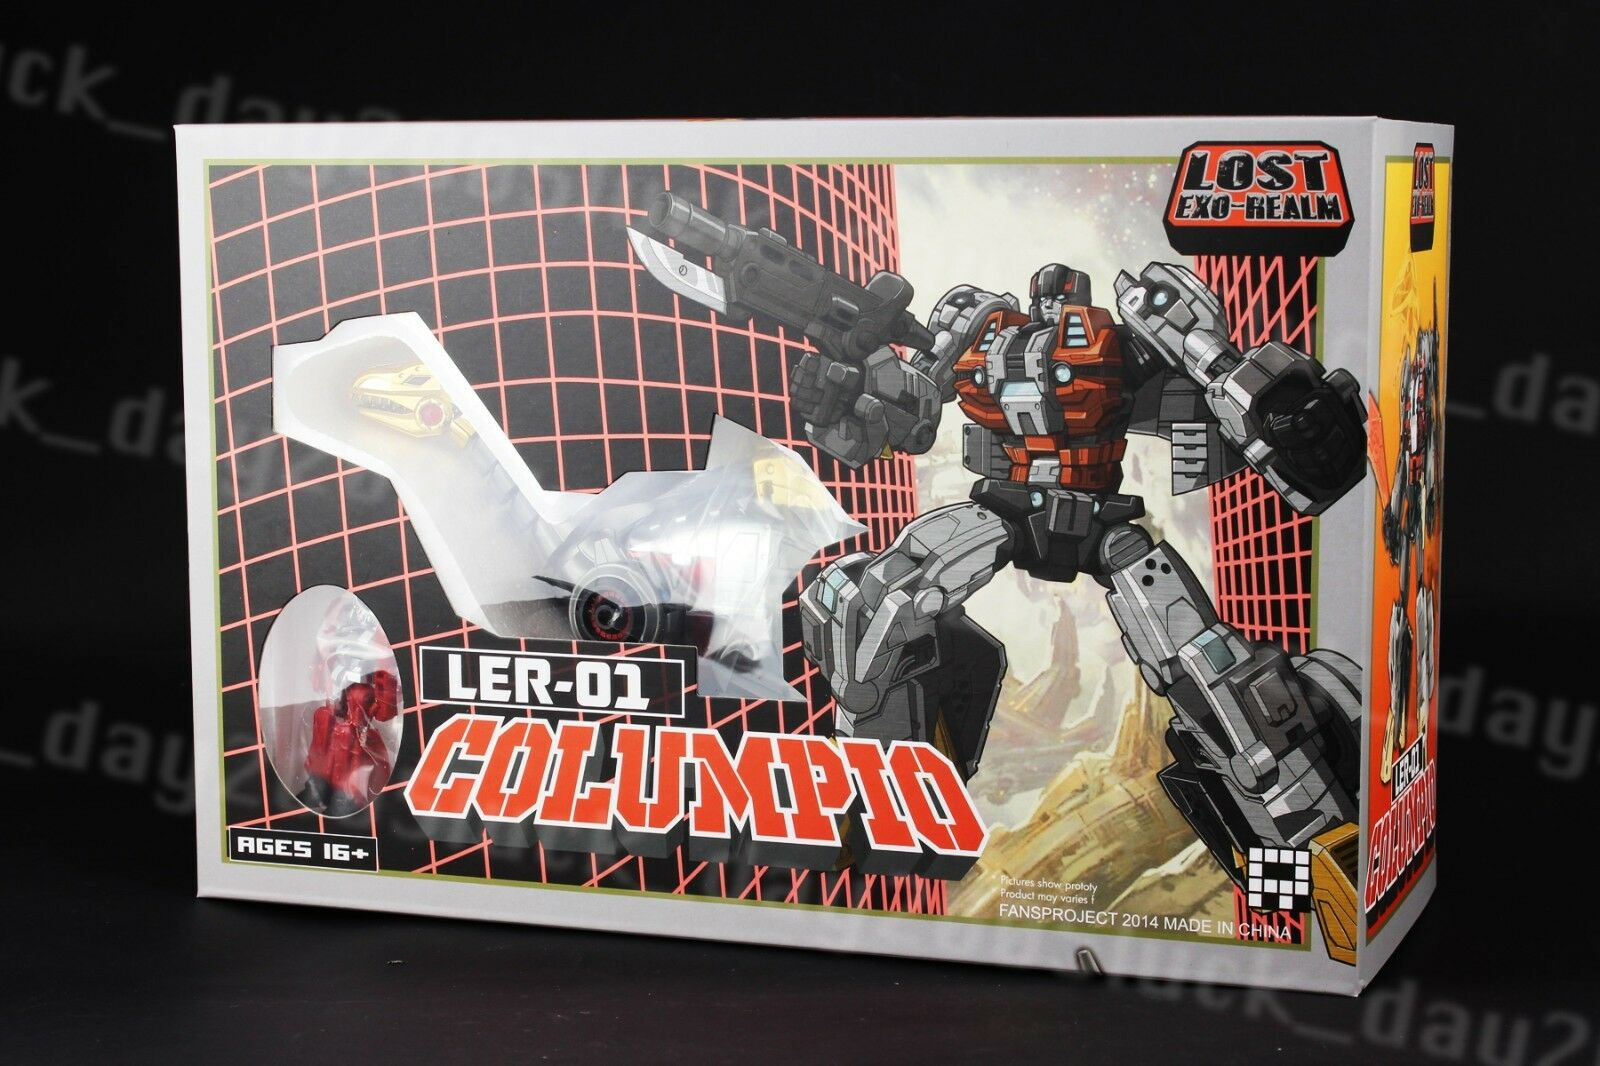 Fansproject Transformers Lost Exo-Realm LER-01 LER-01 LER-01 Columpio Dinobot Action Figure 2adf70